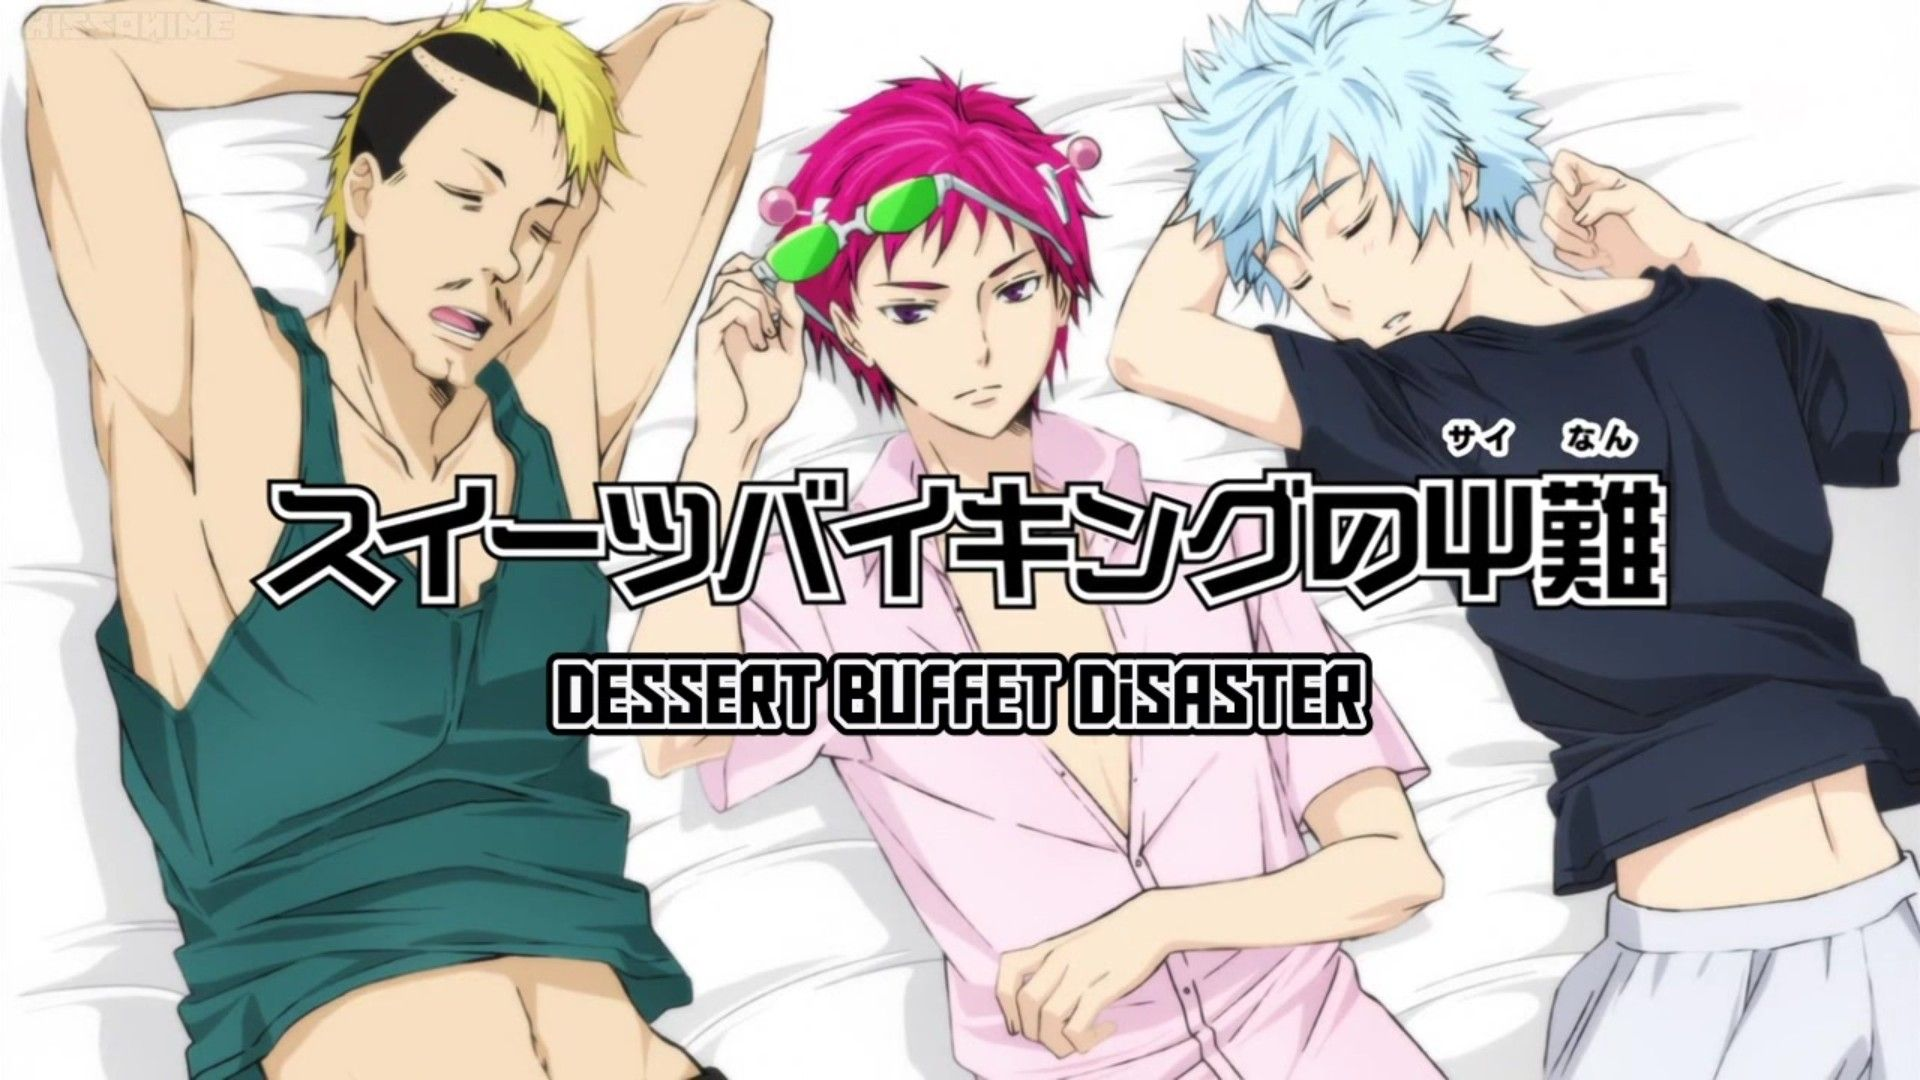 Pin by Soha Akabane on Saiki Kusuo no Ψ Nan Saiki, Anime